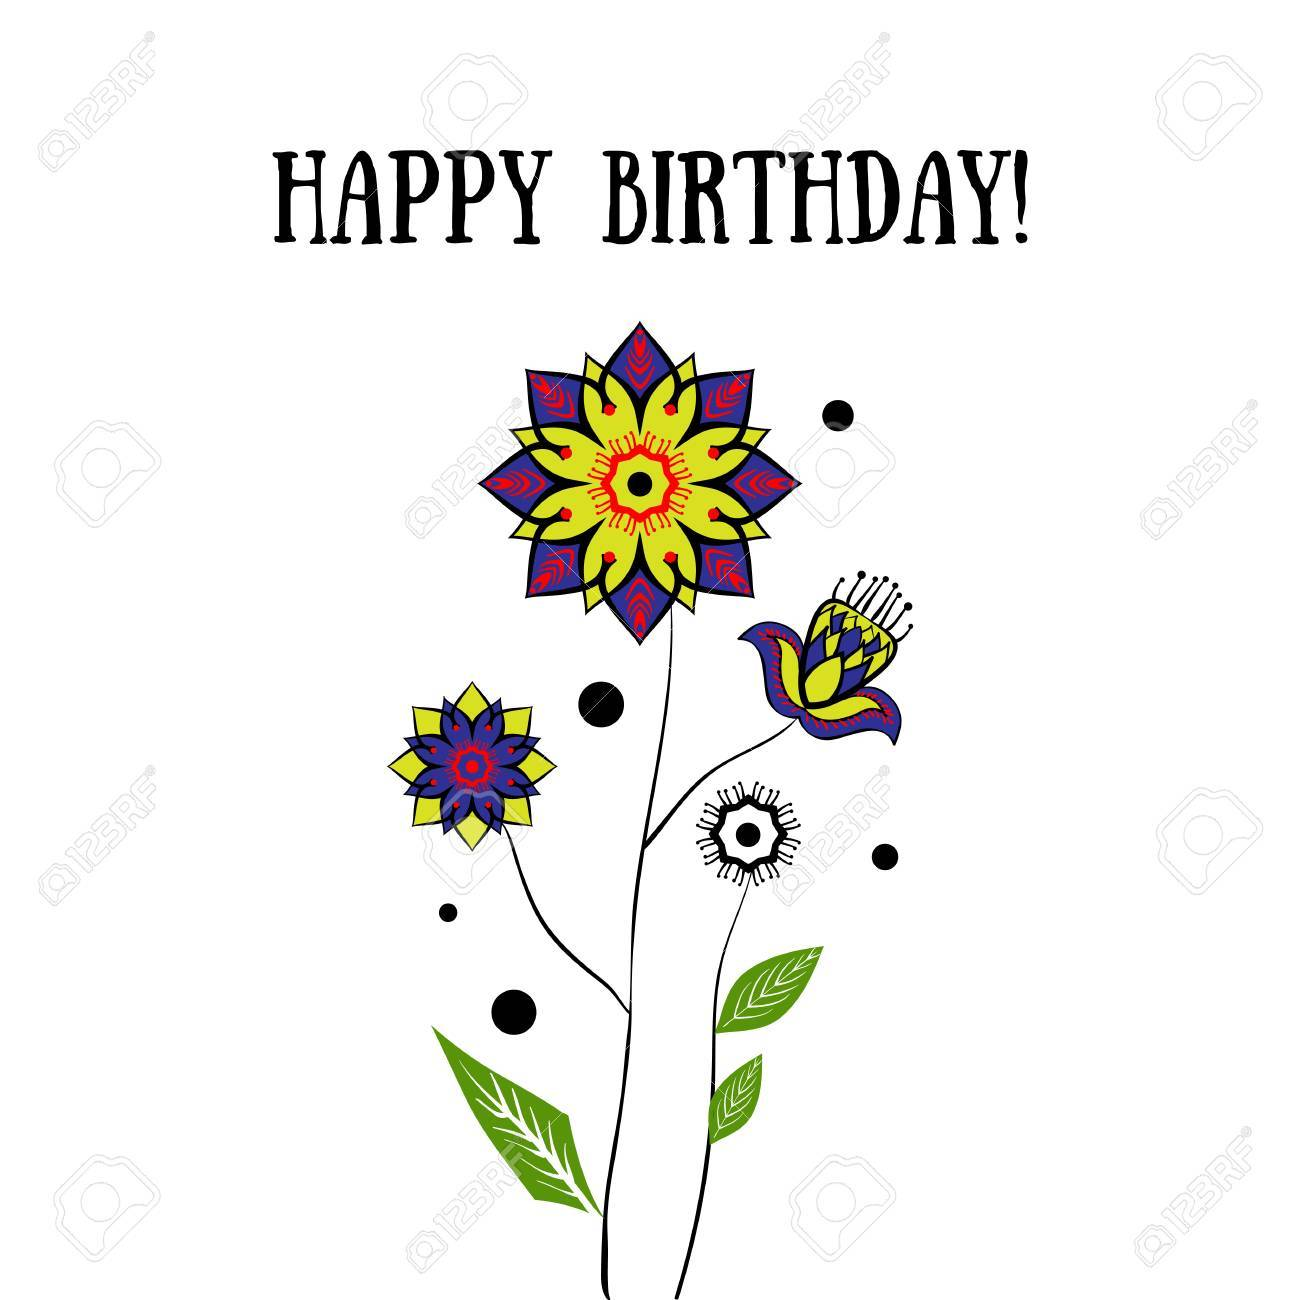 Happy Birthday Card With Flowers On White Background Royalty Free